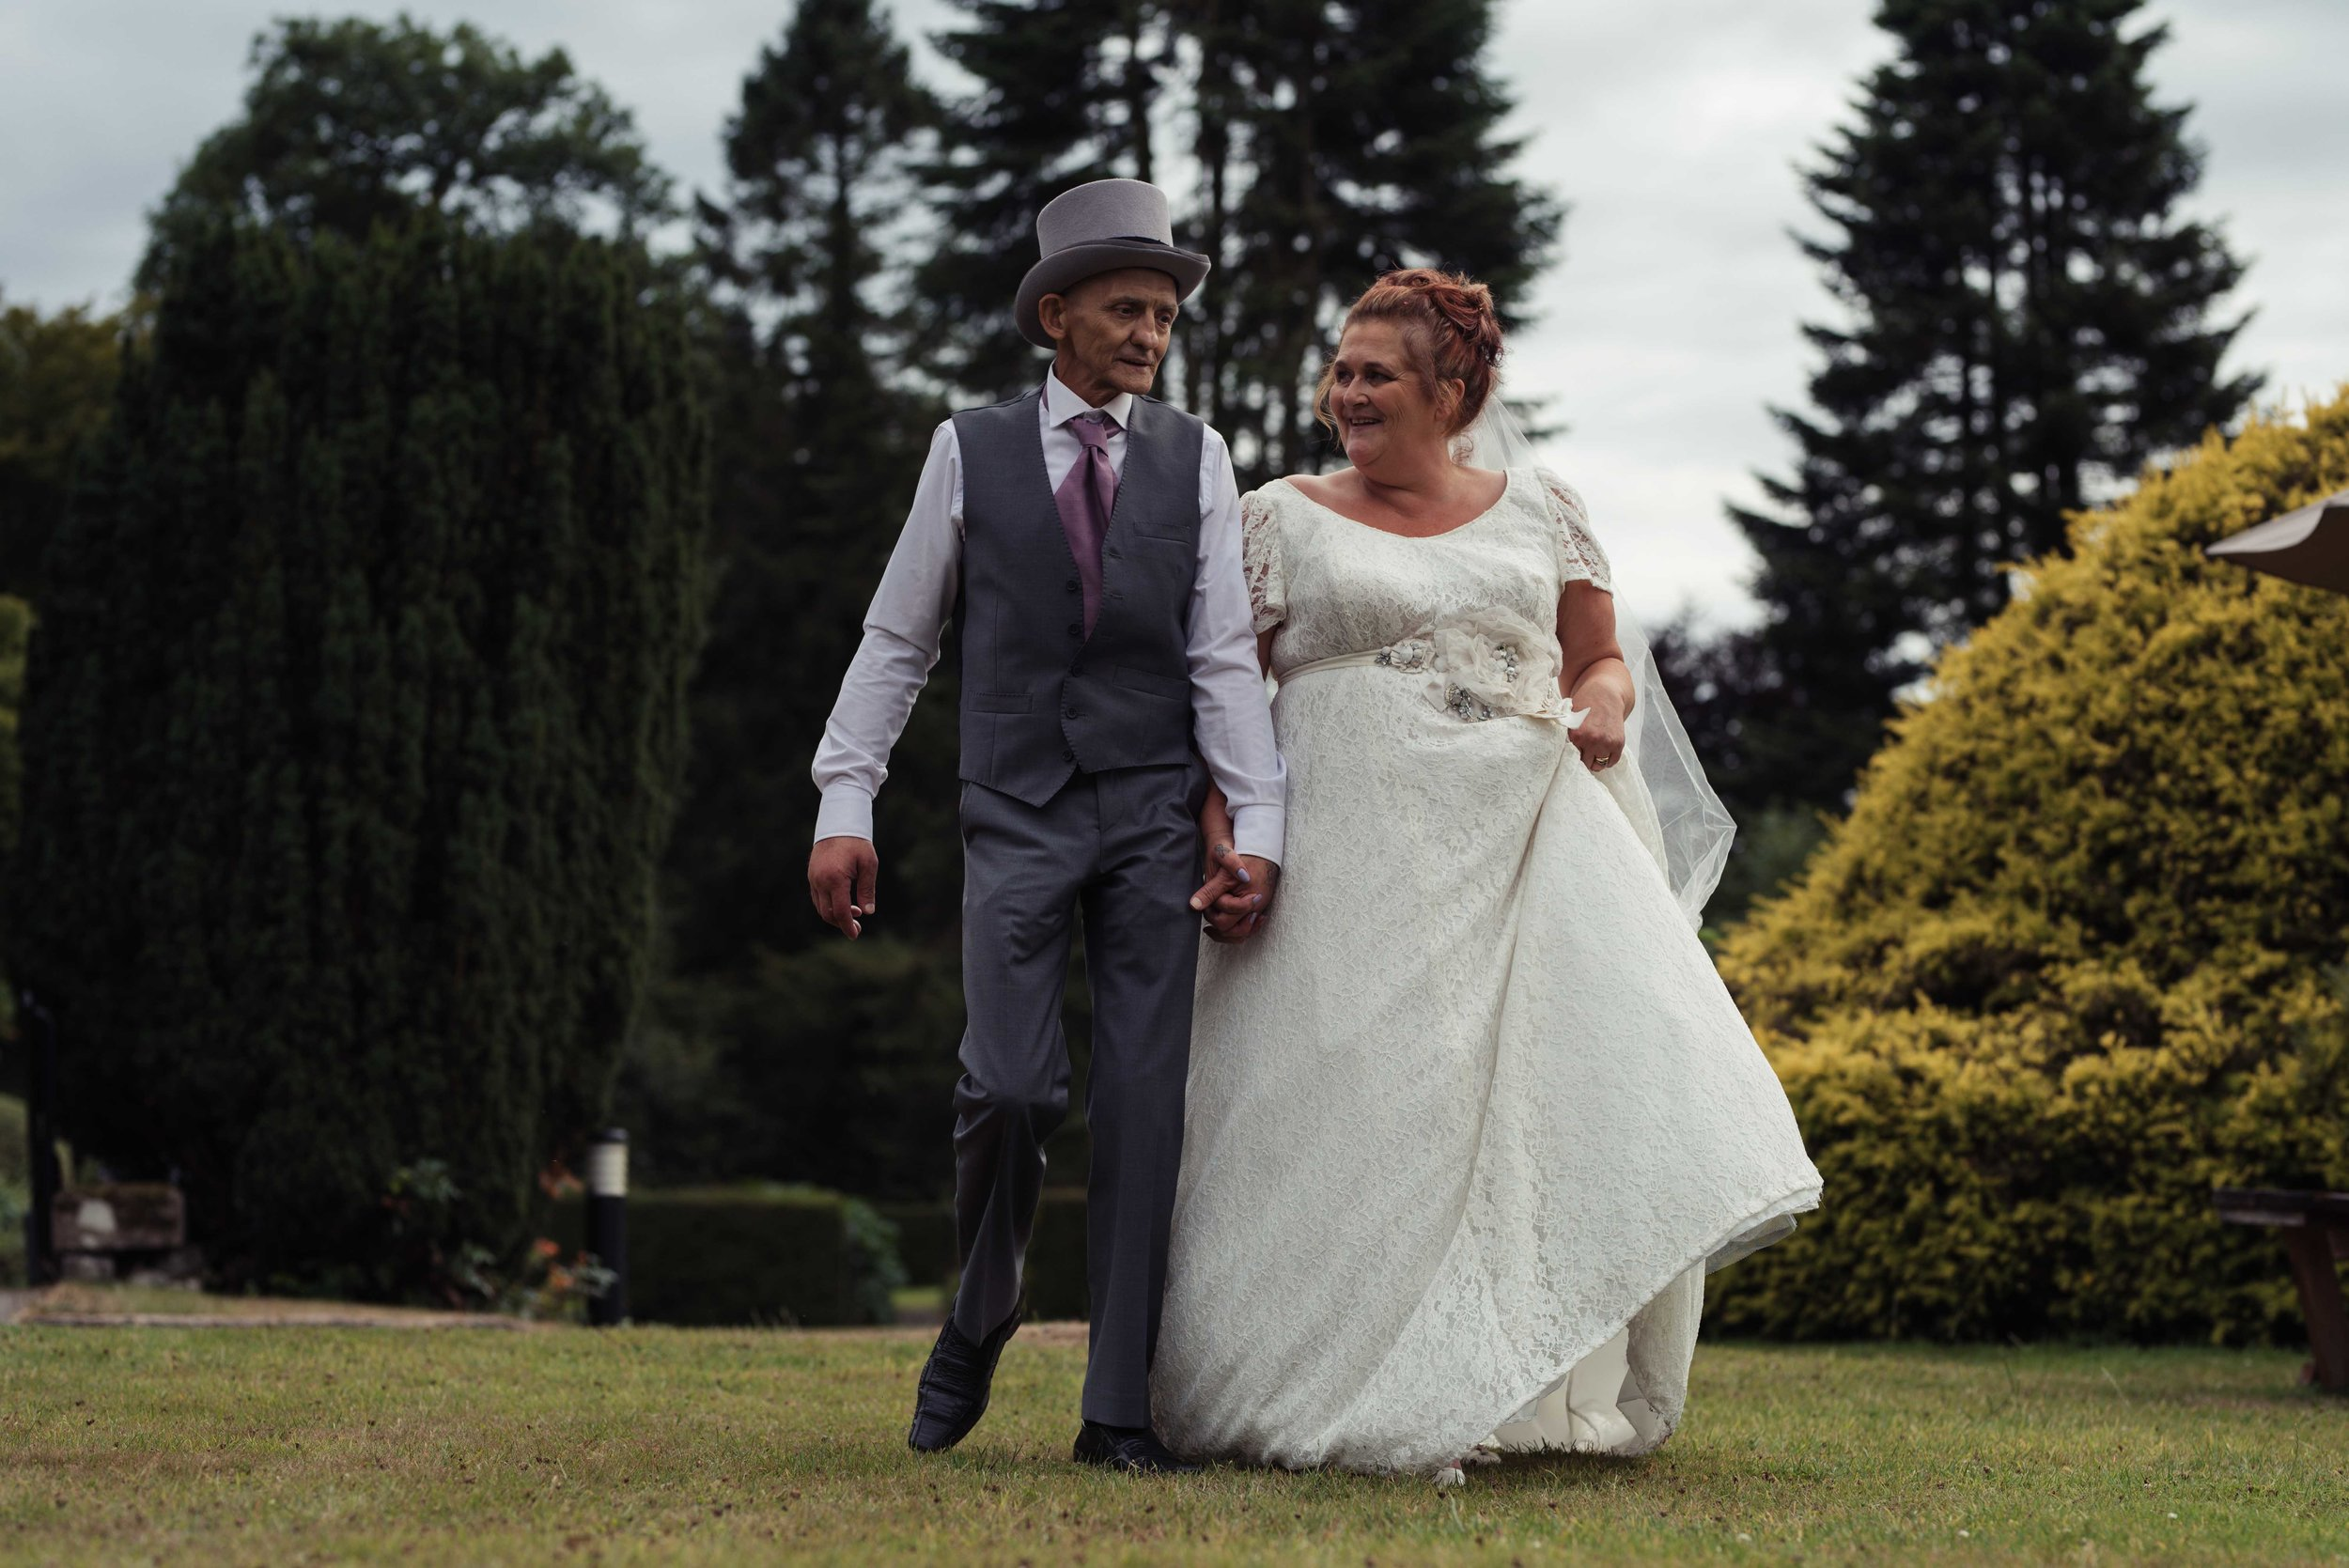 The bride and groom walk together during their lake district wedding photography portrait session